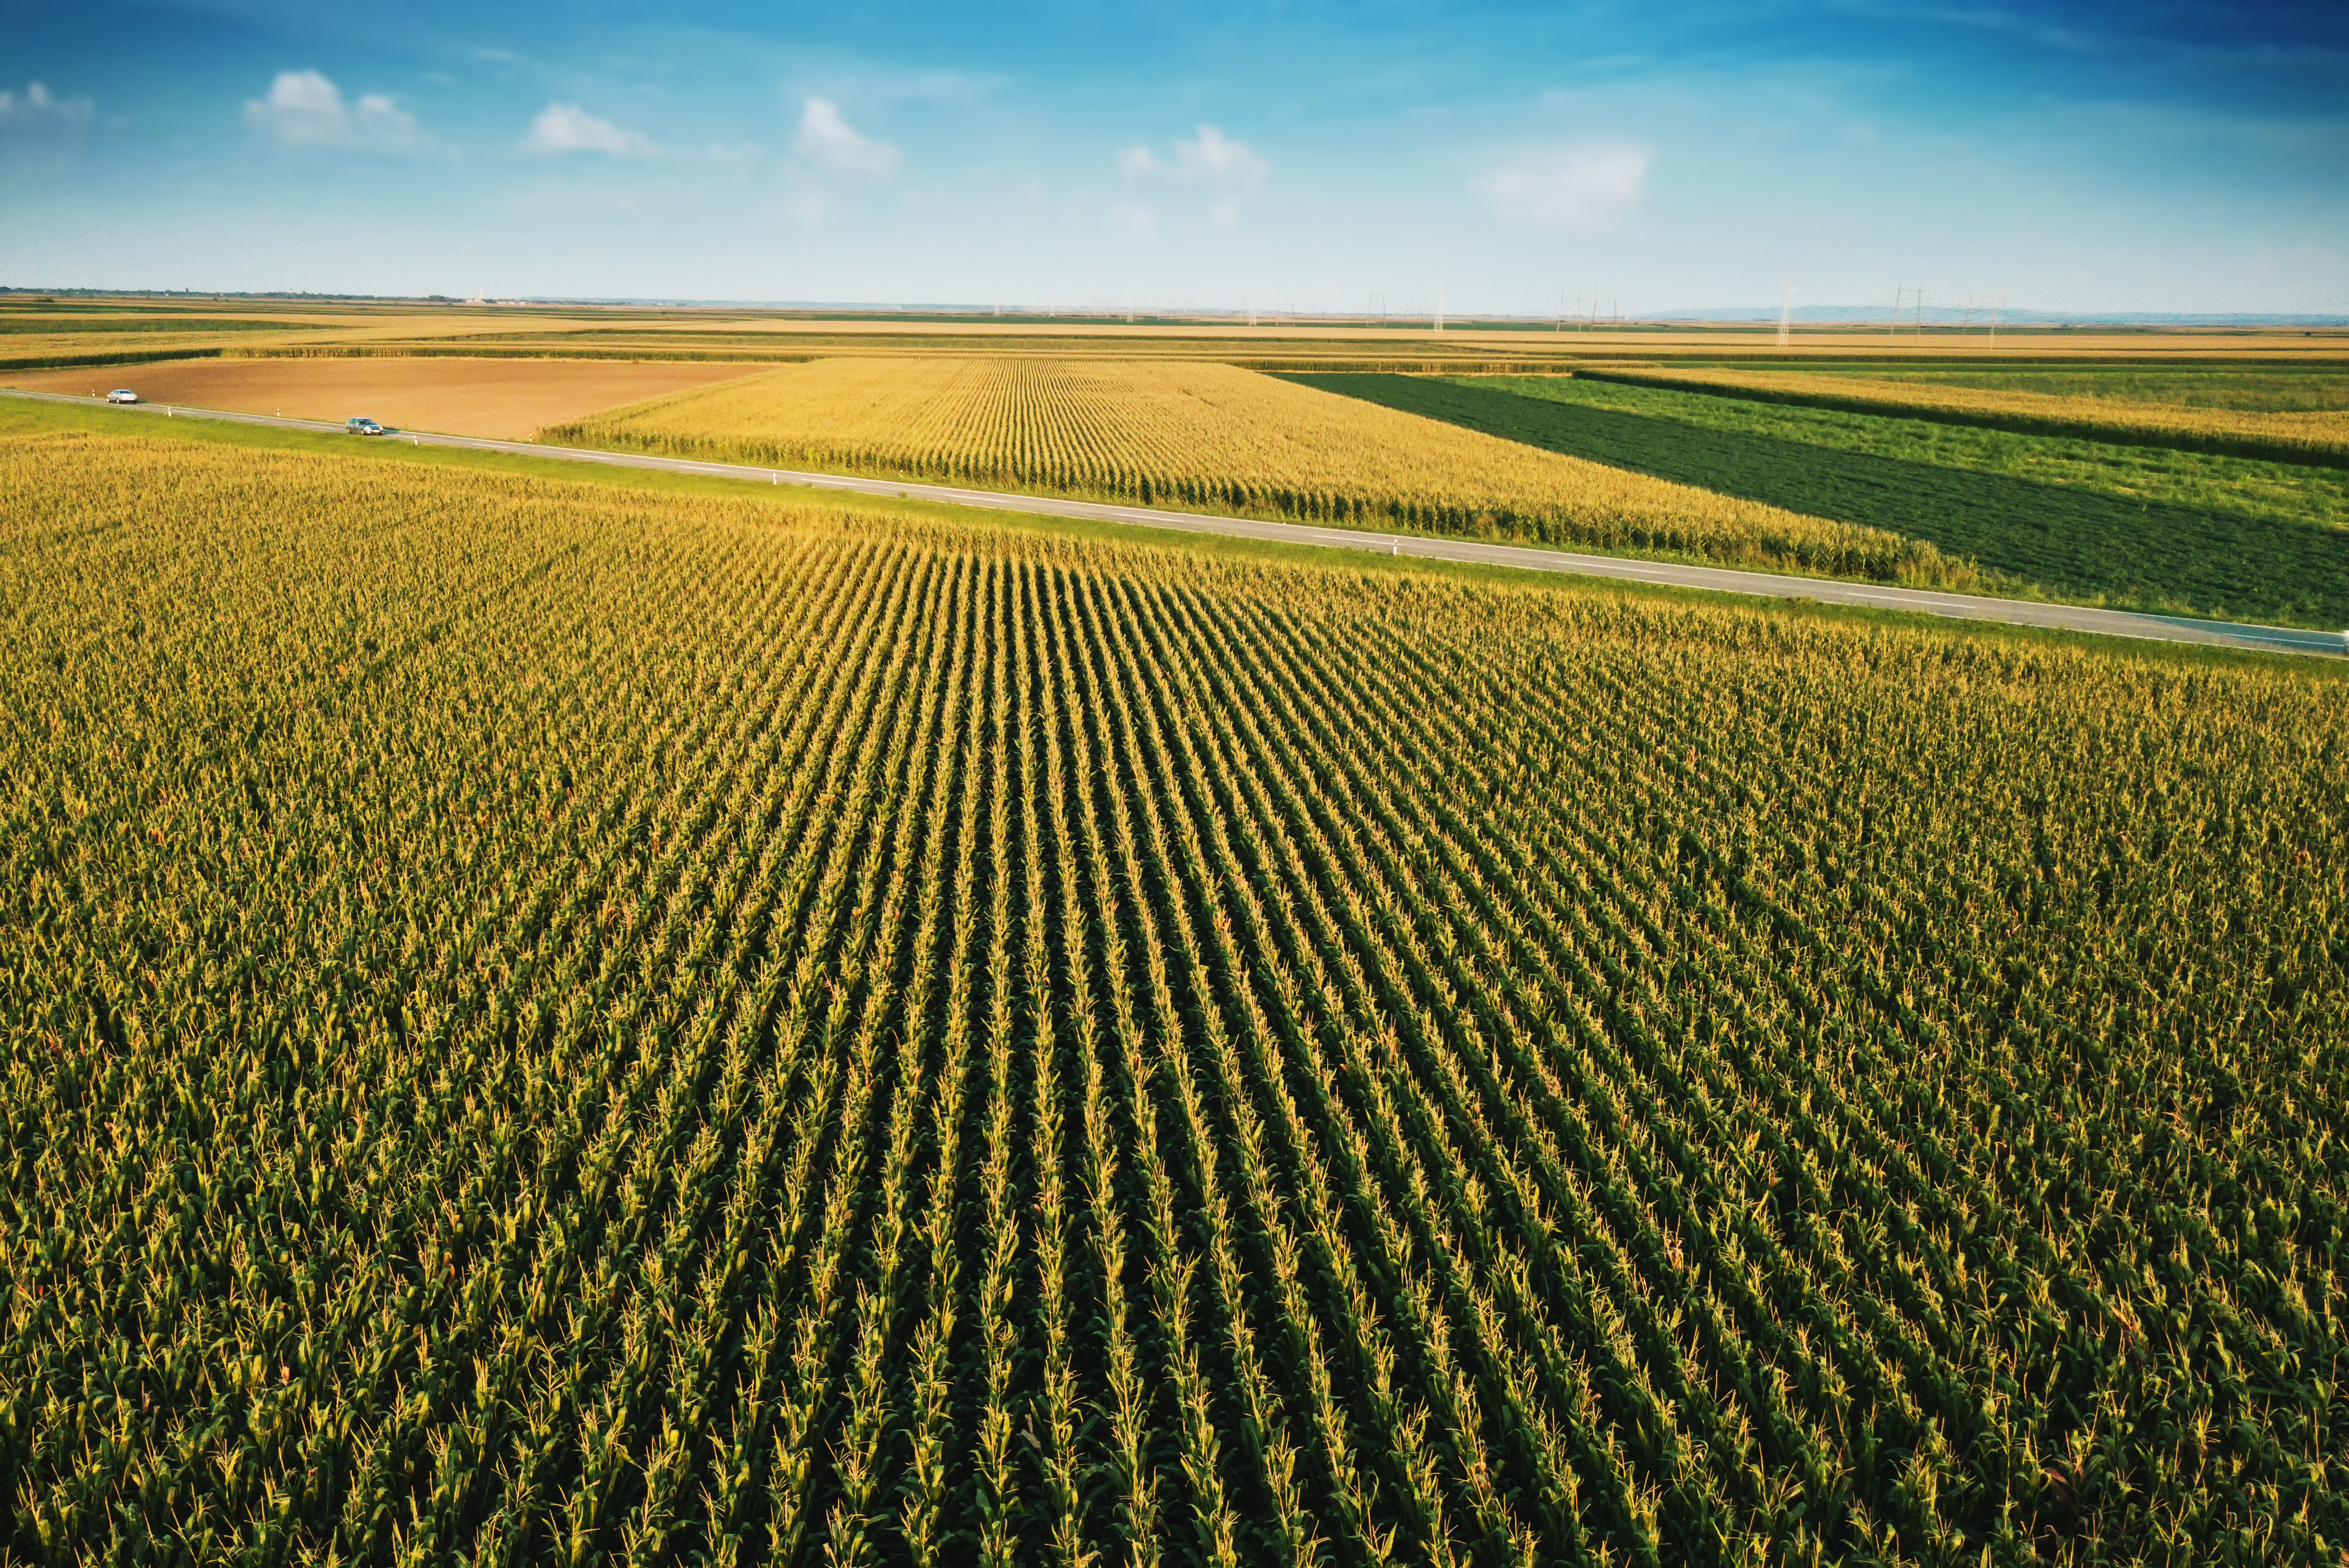 Aerial drone view of cultivated green corn field